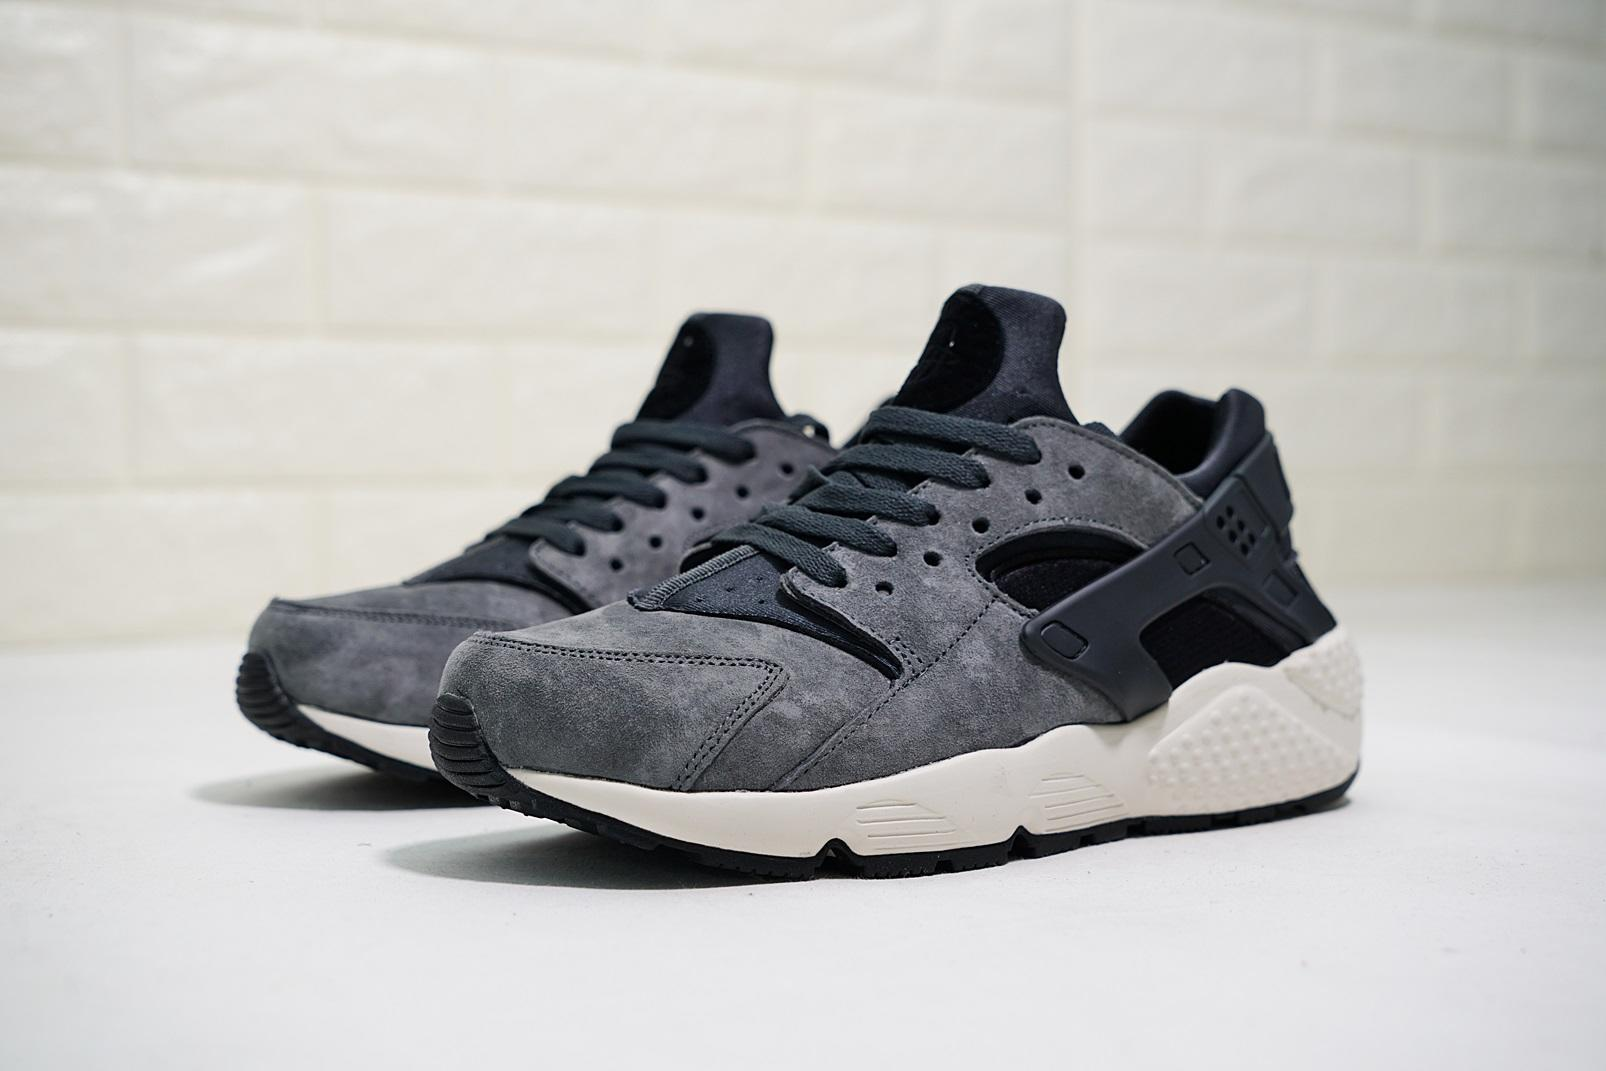 """7e32d61289630 ... Nike Air Huarache first generation Wallace classic wild casual sports  jogging shoes  """"skin dark gray """" 704980-016  New product real shot  💯  men s shoes ..."""